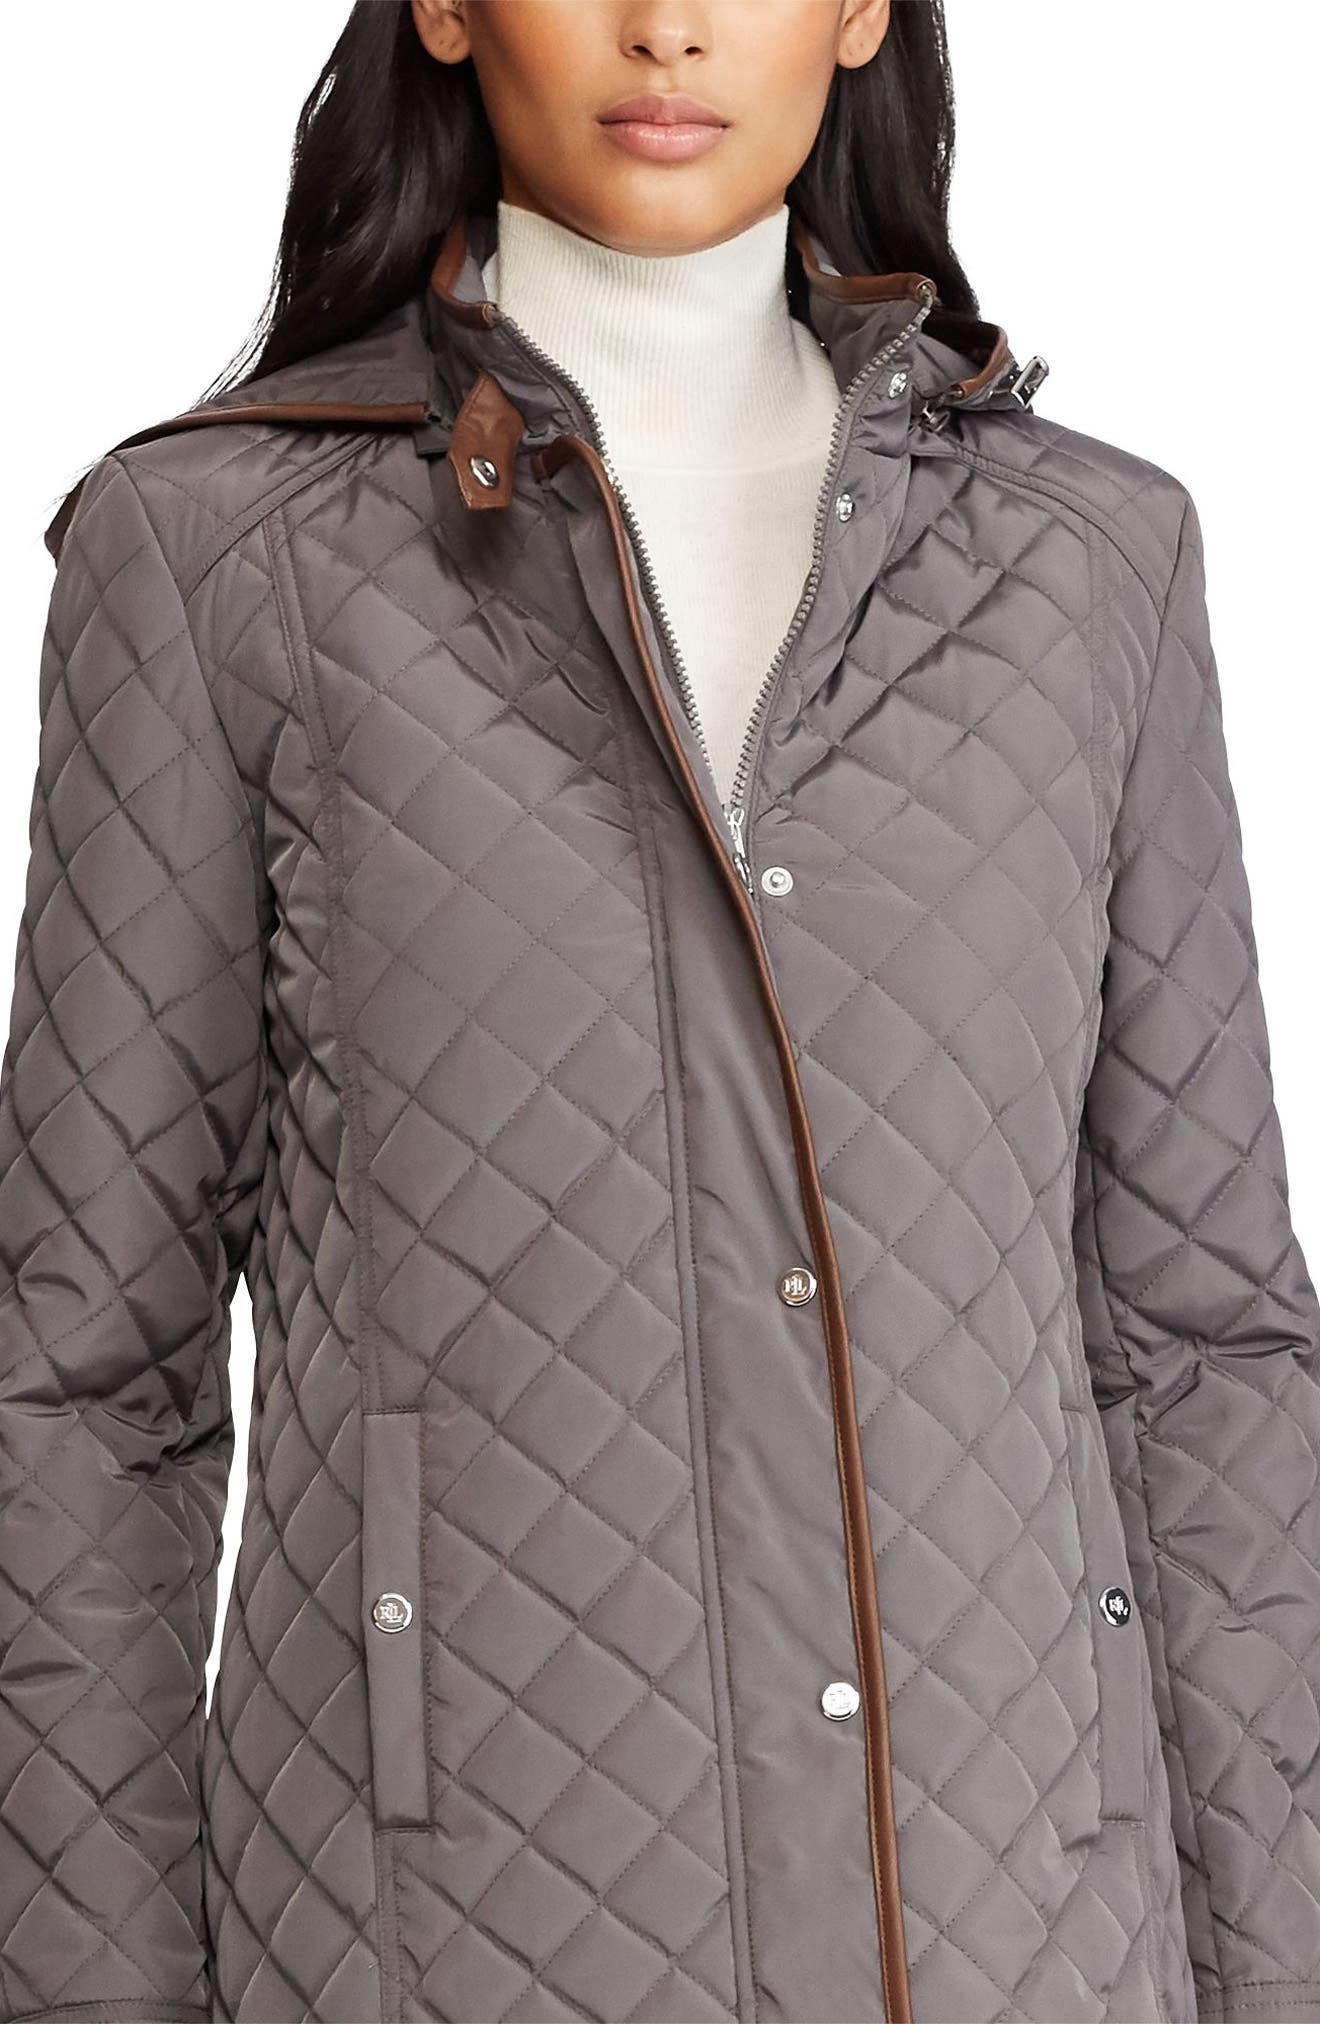 Quilted Hooded Coat,                             Alternate thumbnail 3, color,                             FLANNEL